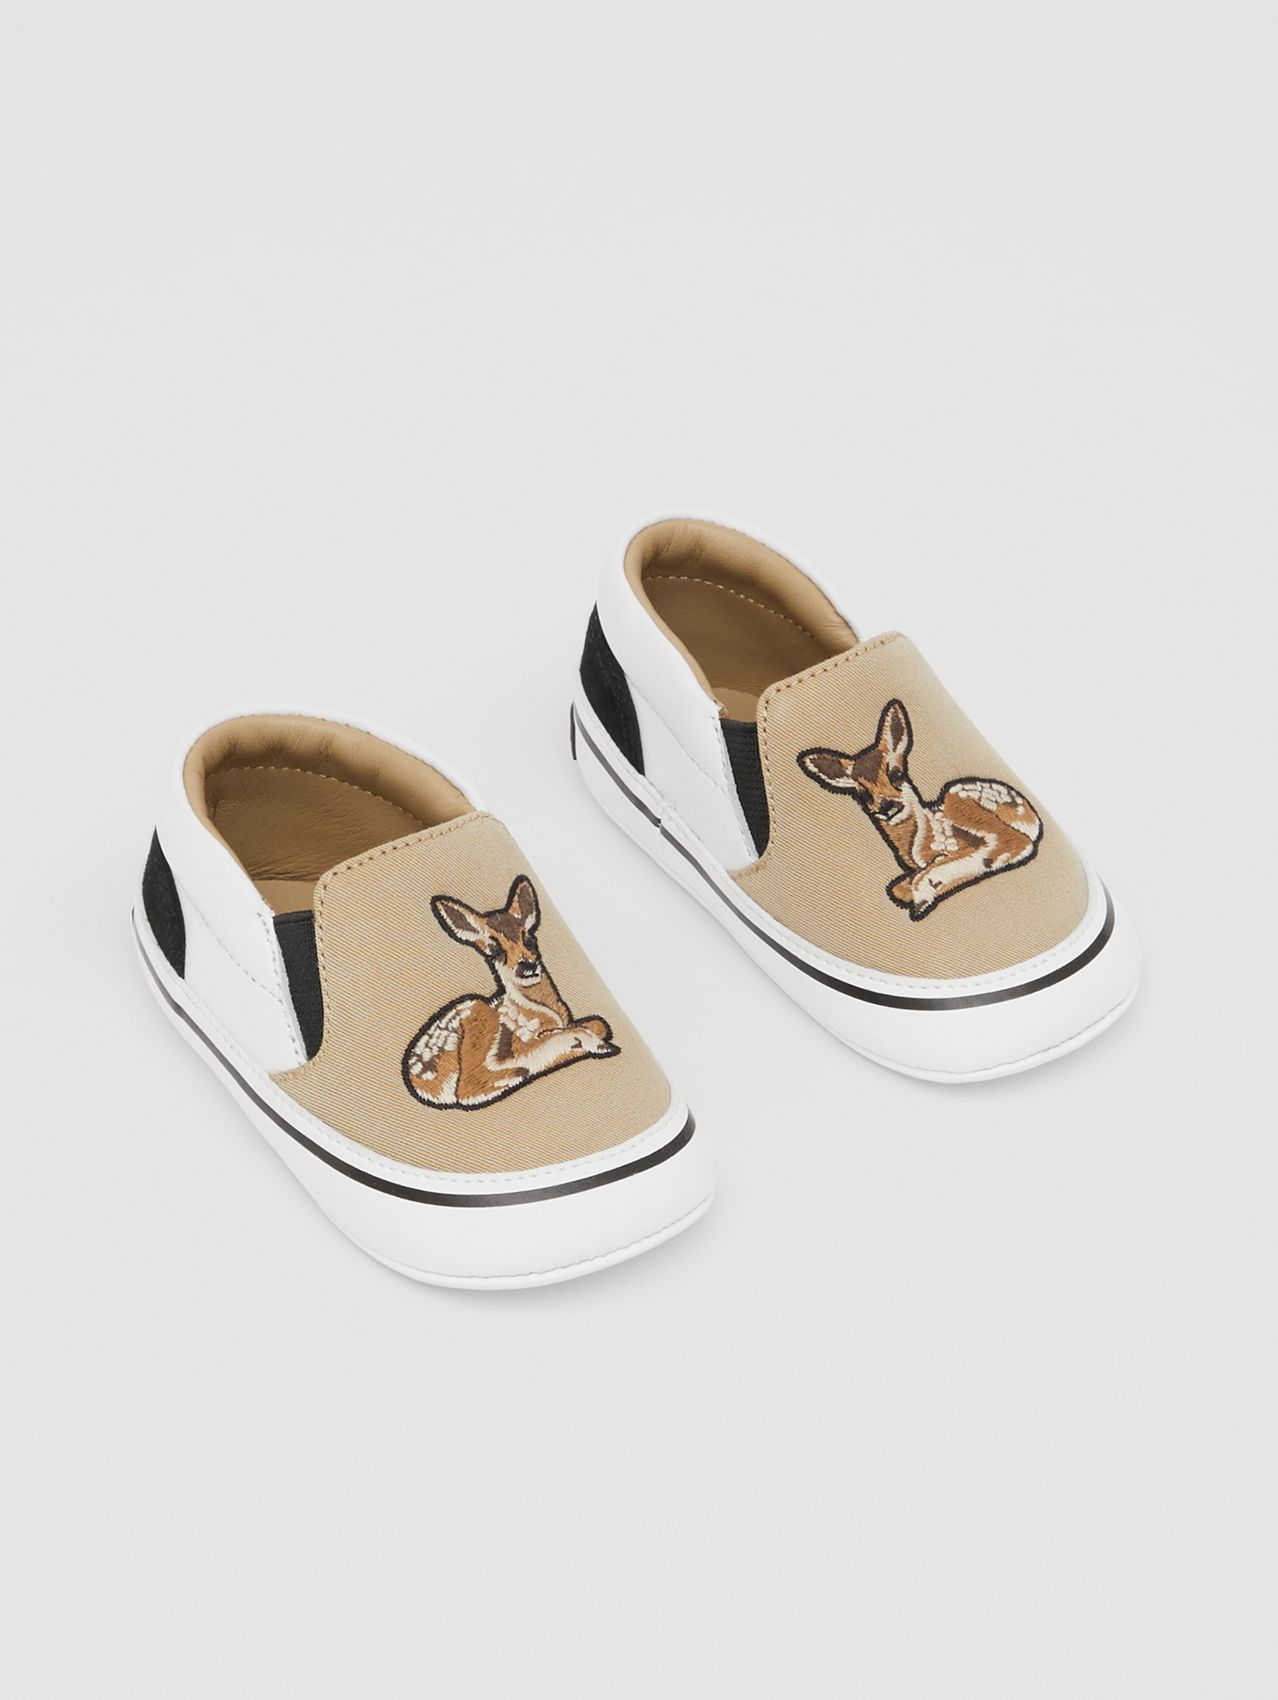 Deer Motif Slip-on Shoes (Honey)